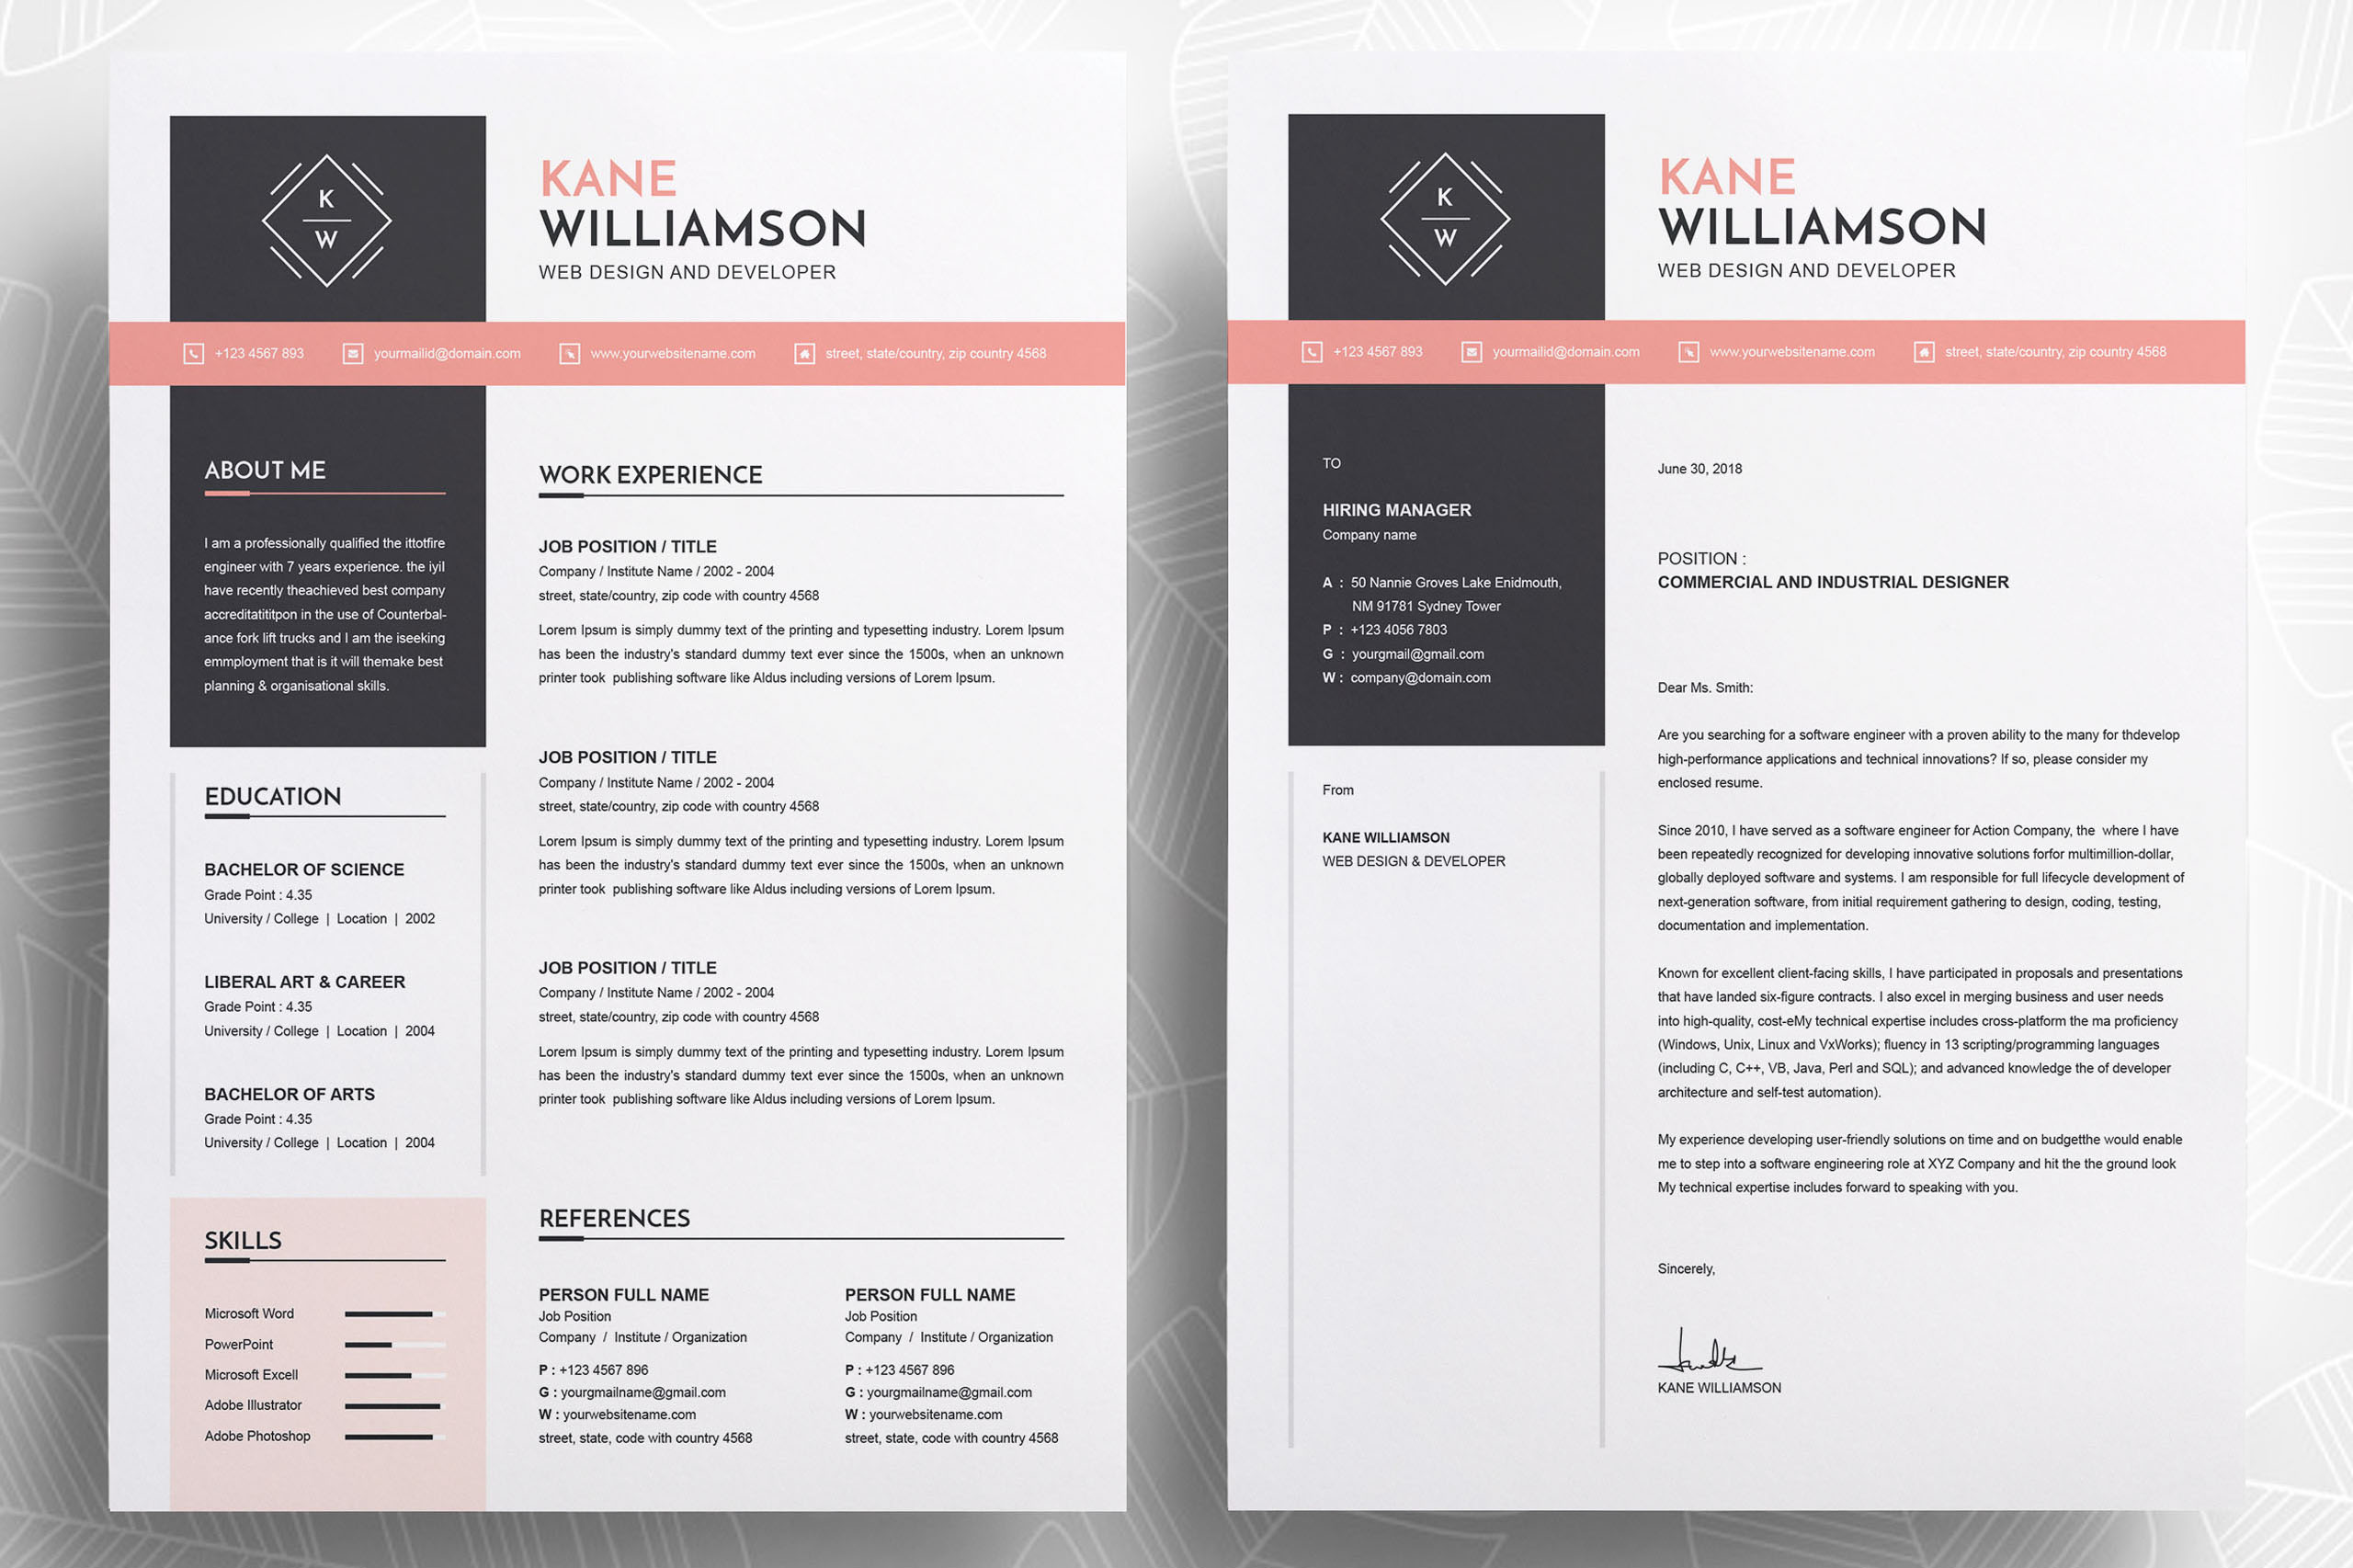 Professional Resume Template | MS Word CV Design Template example image 2